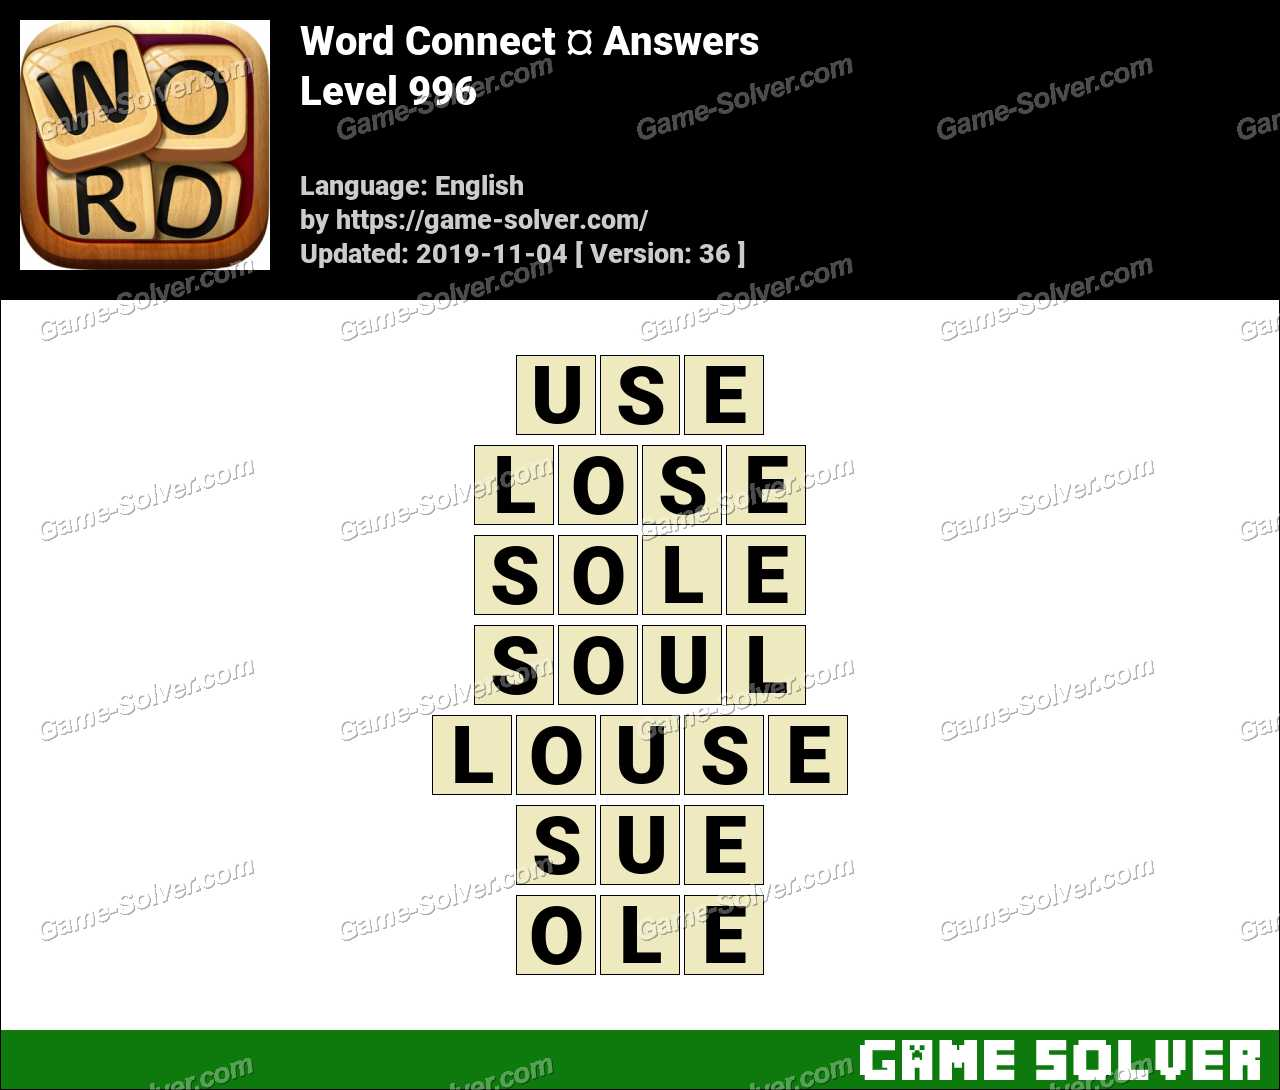 Word Connect Level 996 Answers